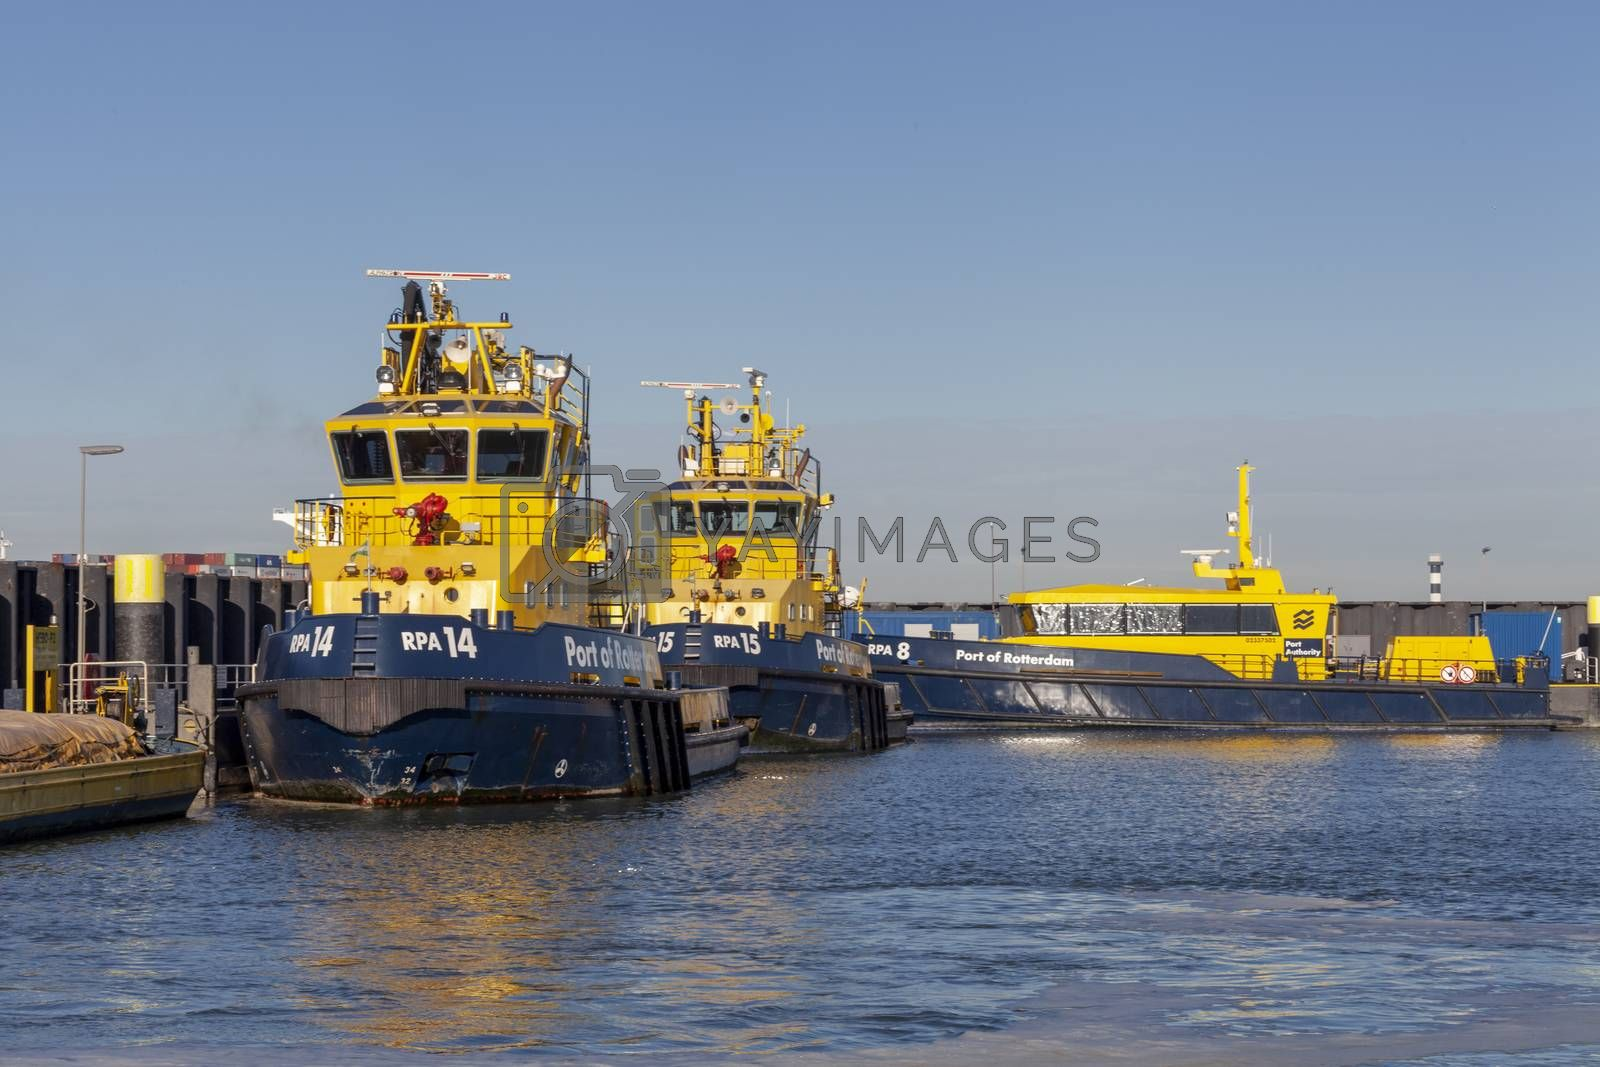 Fire fighting boats of the port of Rotterdam are docked on the side of the maasvlakte near the industrial container port. Rotterdam Netherlands